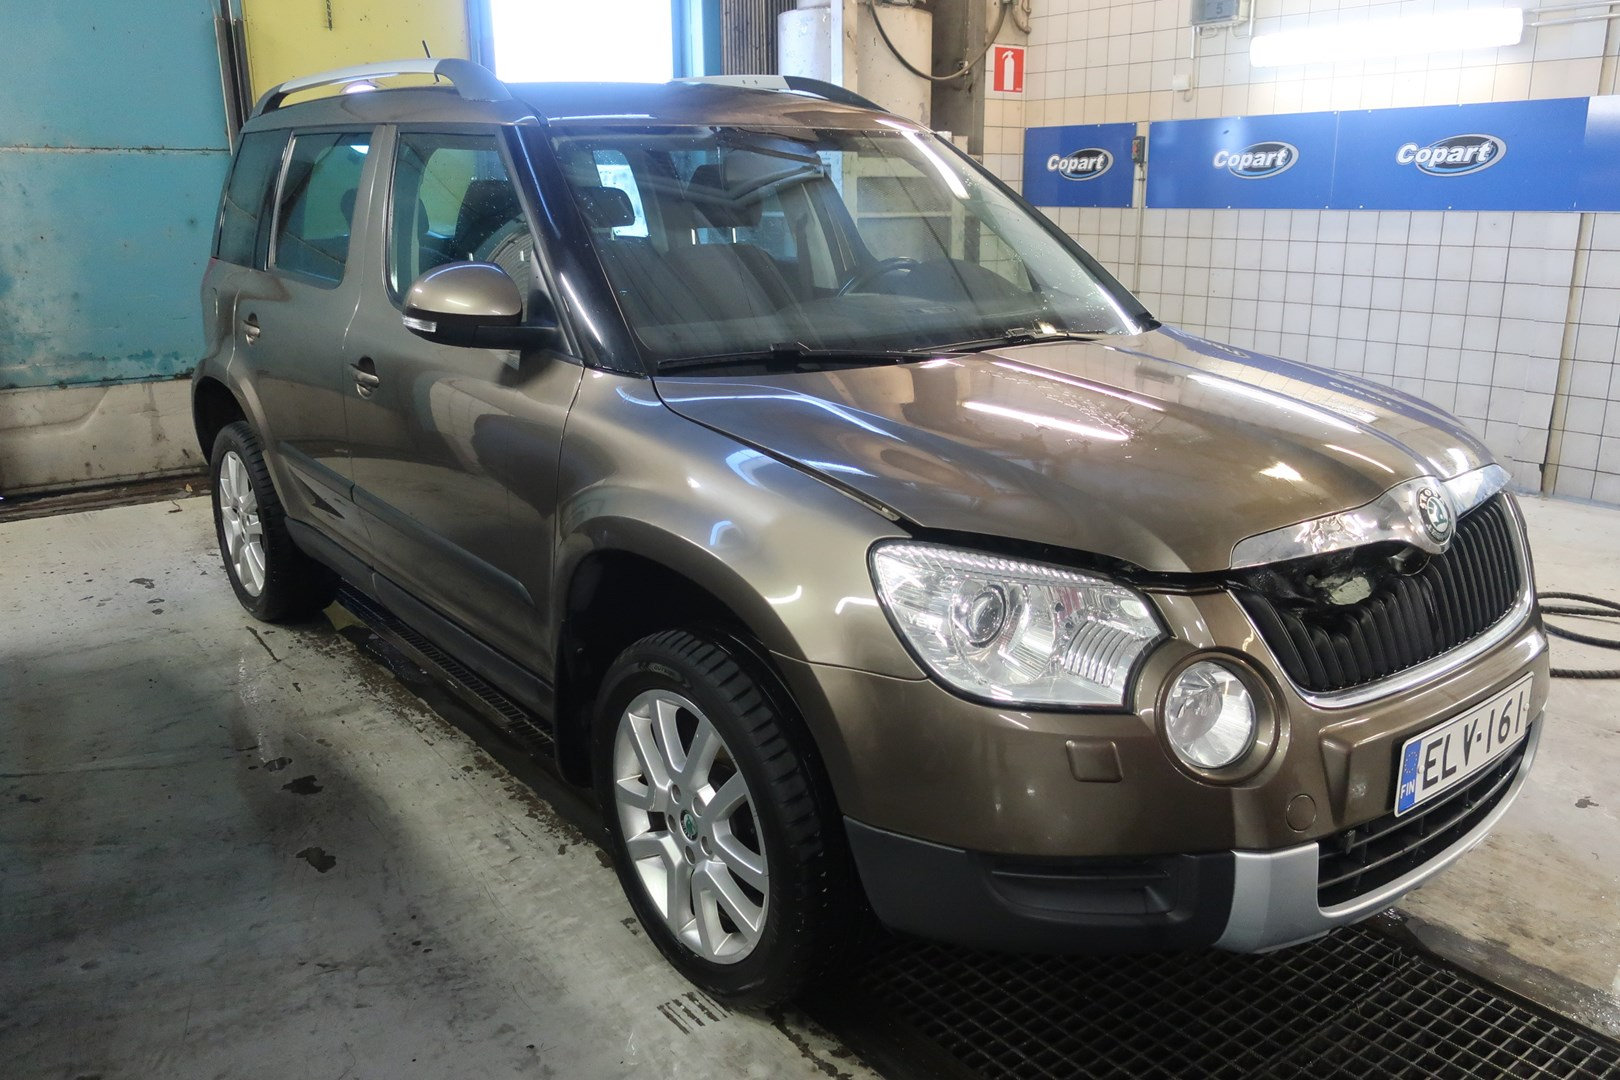 2011 Skoda Yeti For Sale At Turku On Wednesday June 10 2020 Copart Finland